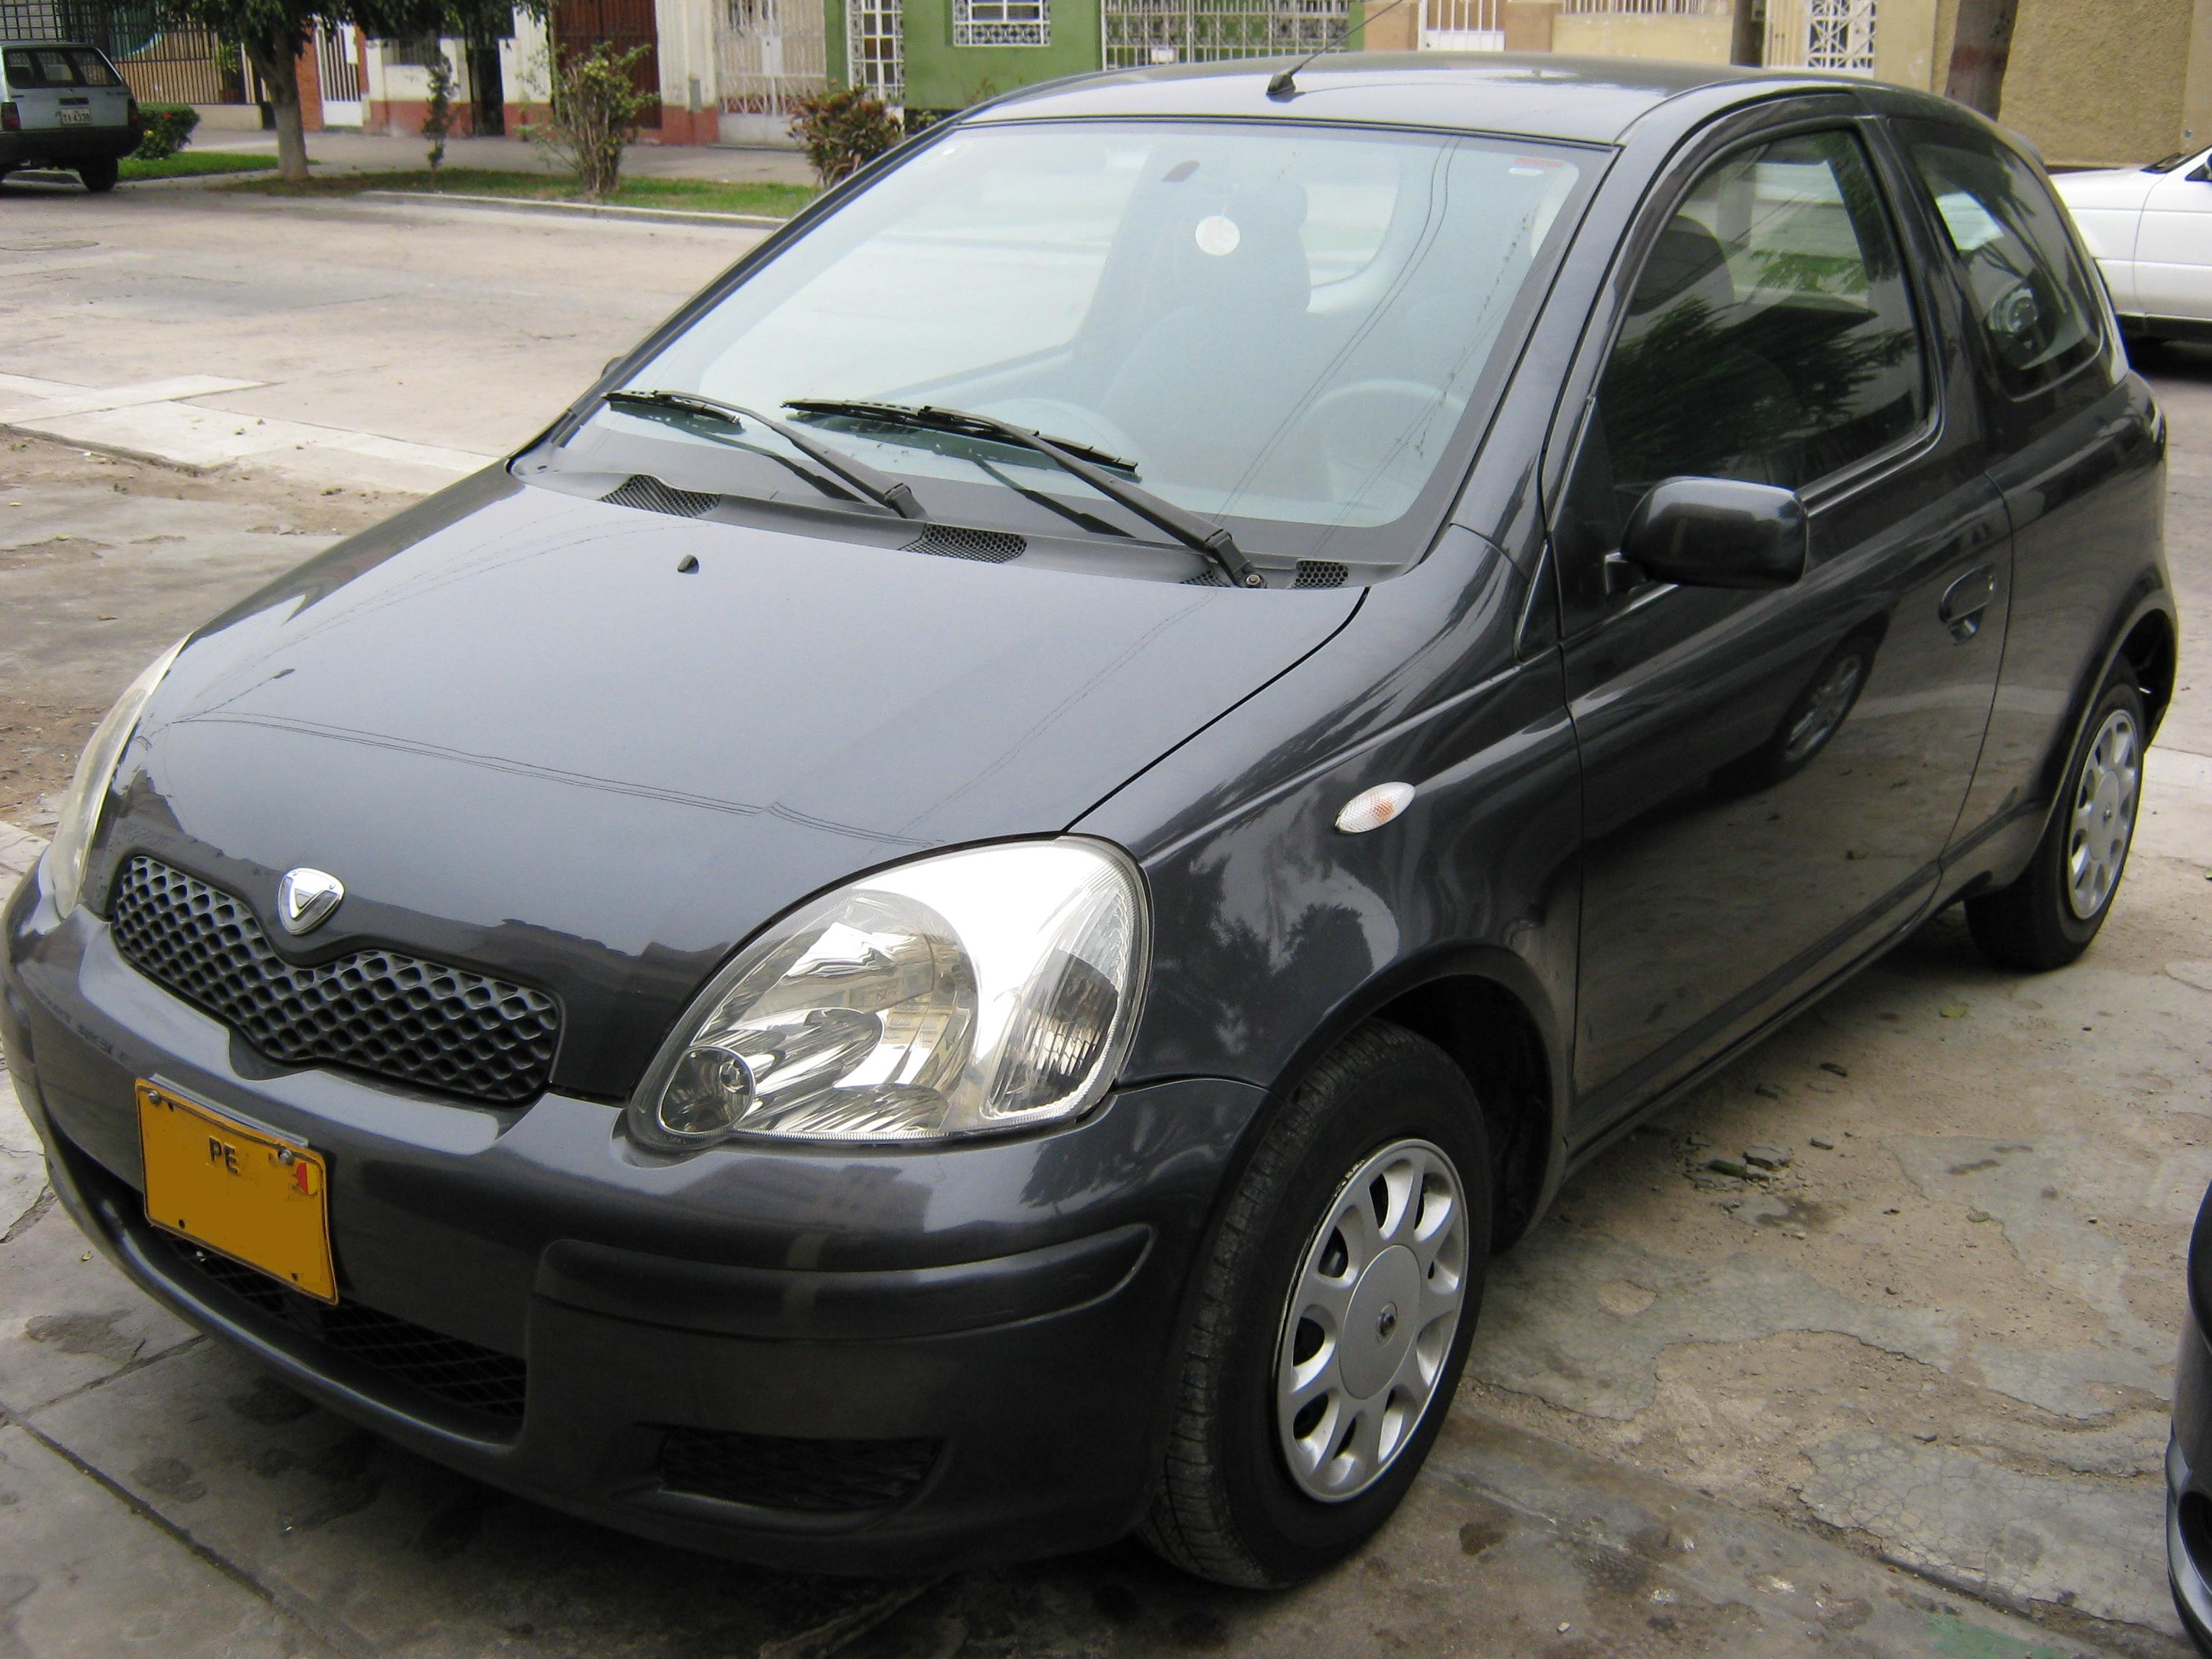 toyota vitz 2002 - Auto-Database com